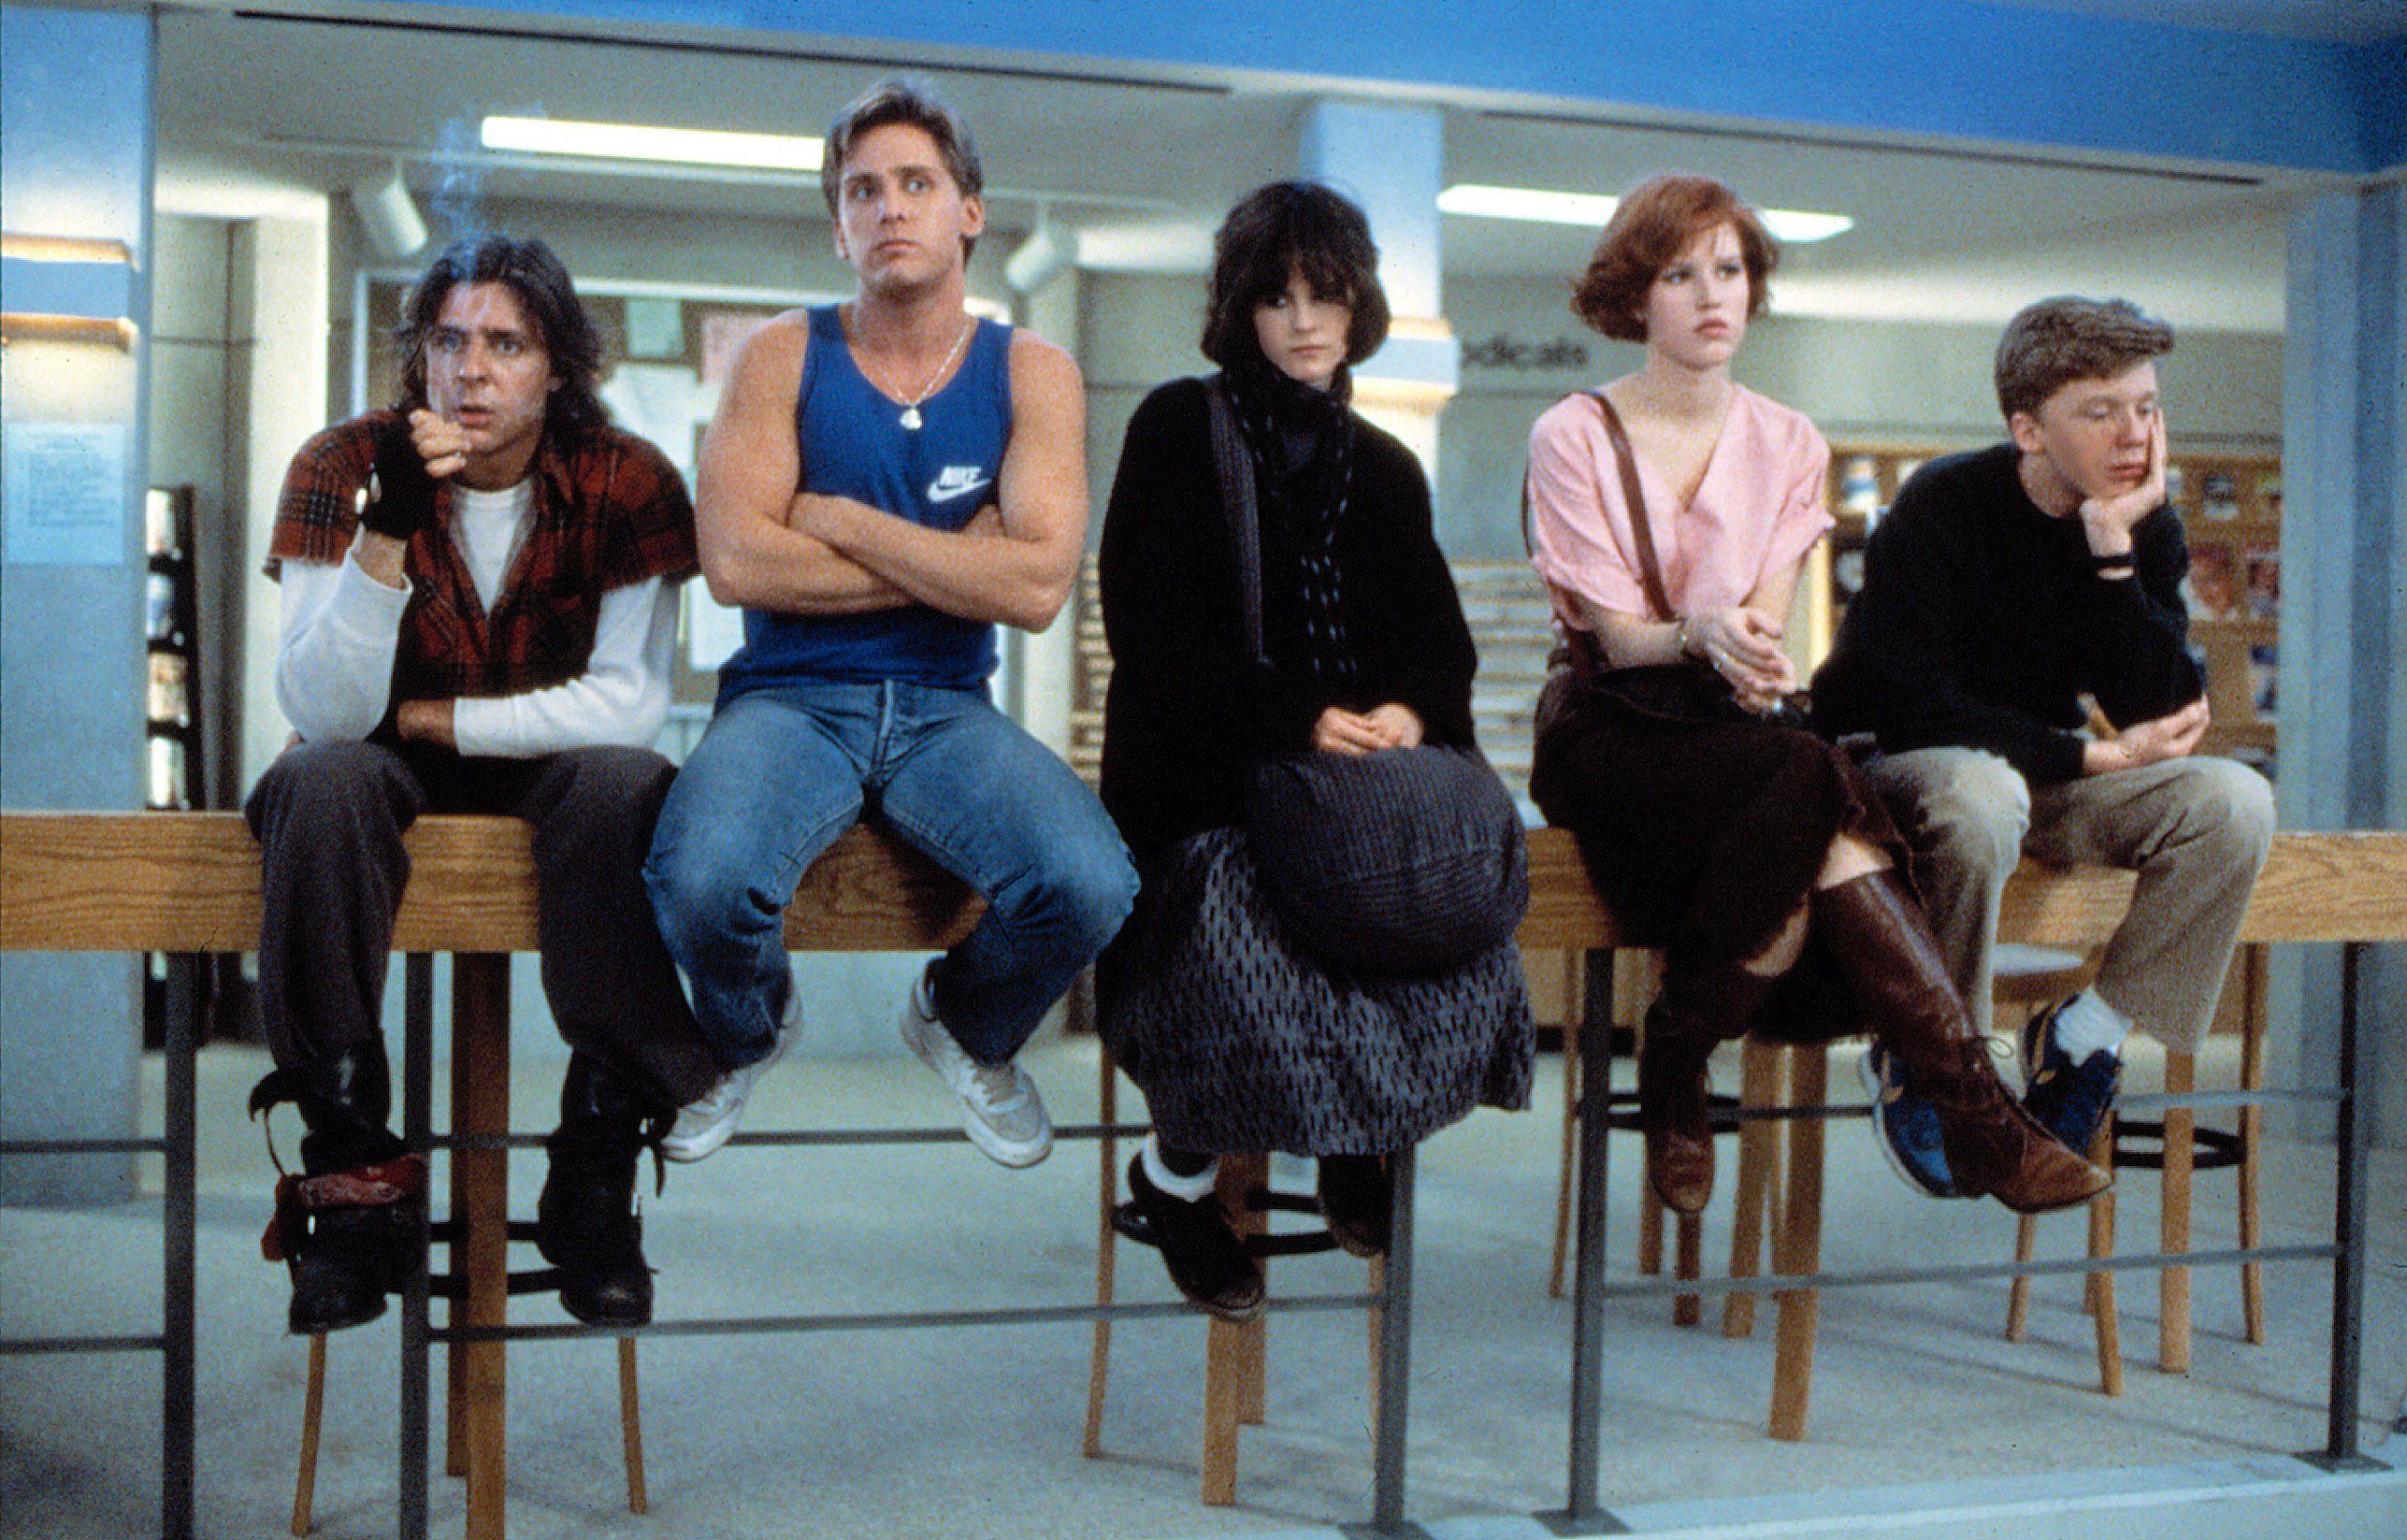 Things You Might Not Know About 'The Breakfast Club' - Fame10